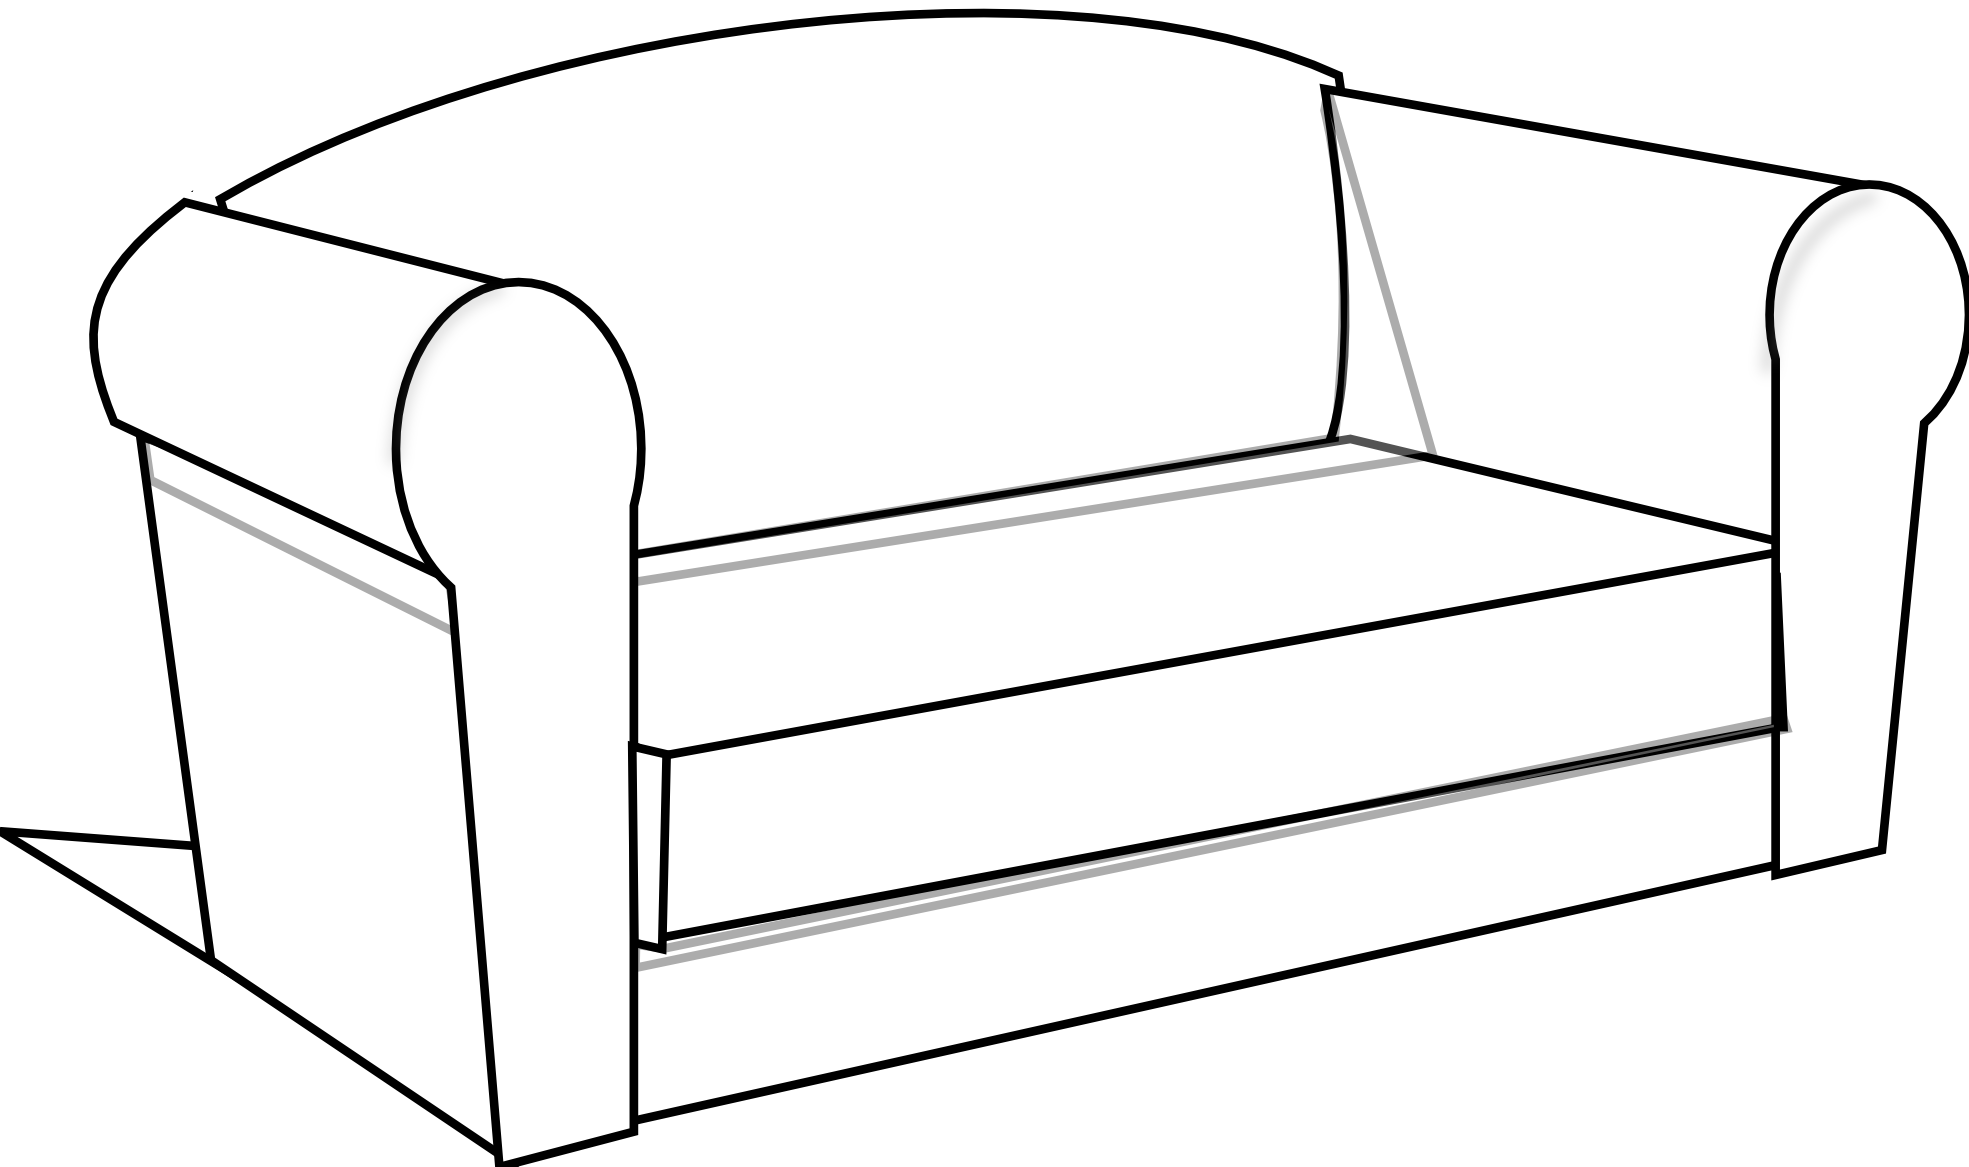 1969x1167 Bed Black And White Couch Clipart Black And White Free Images